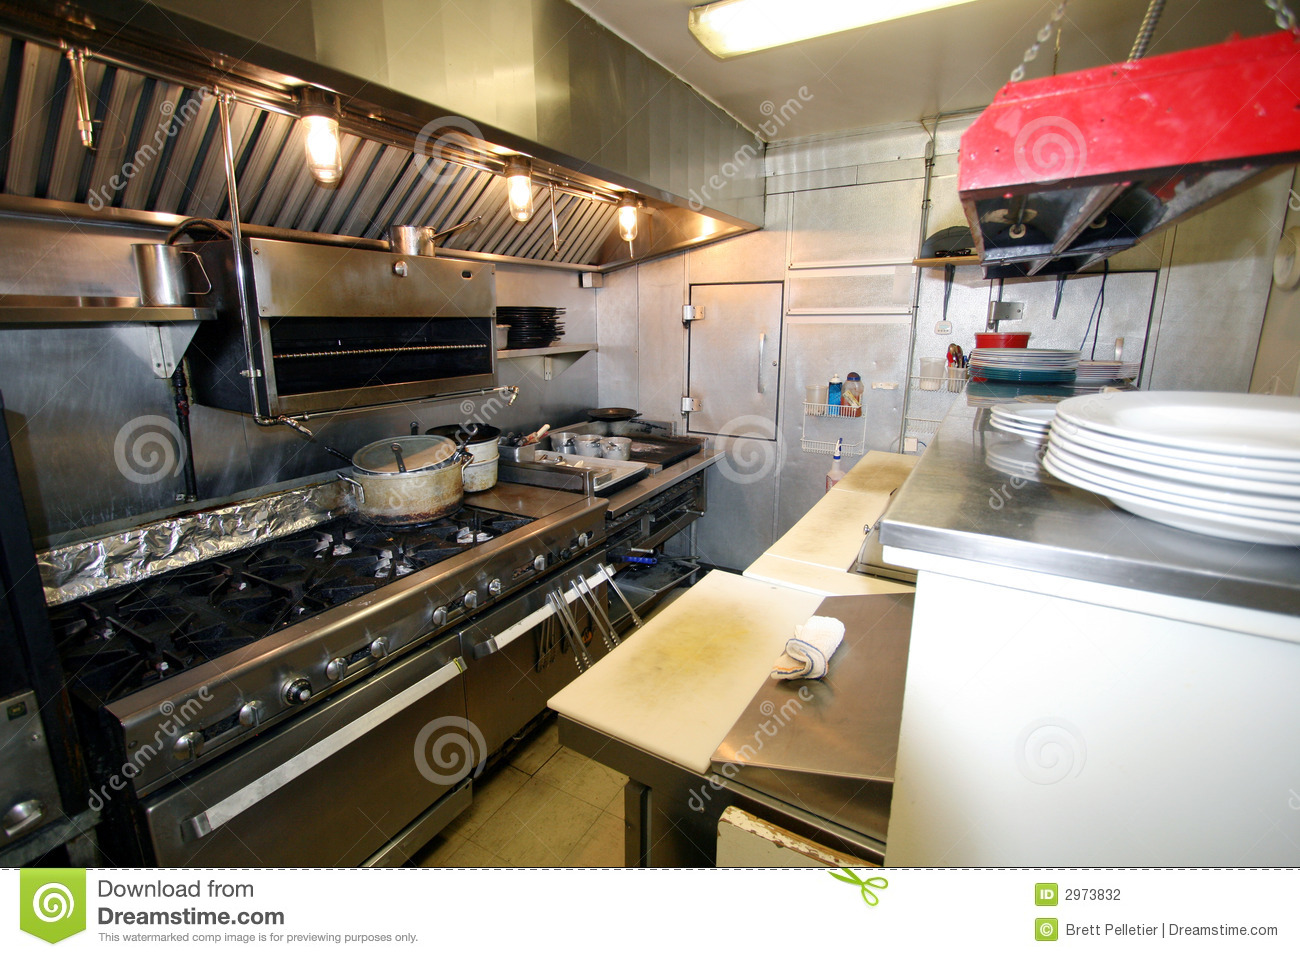 Small Kitchen In A Restaurant